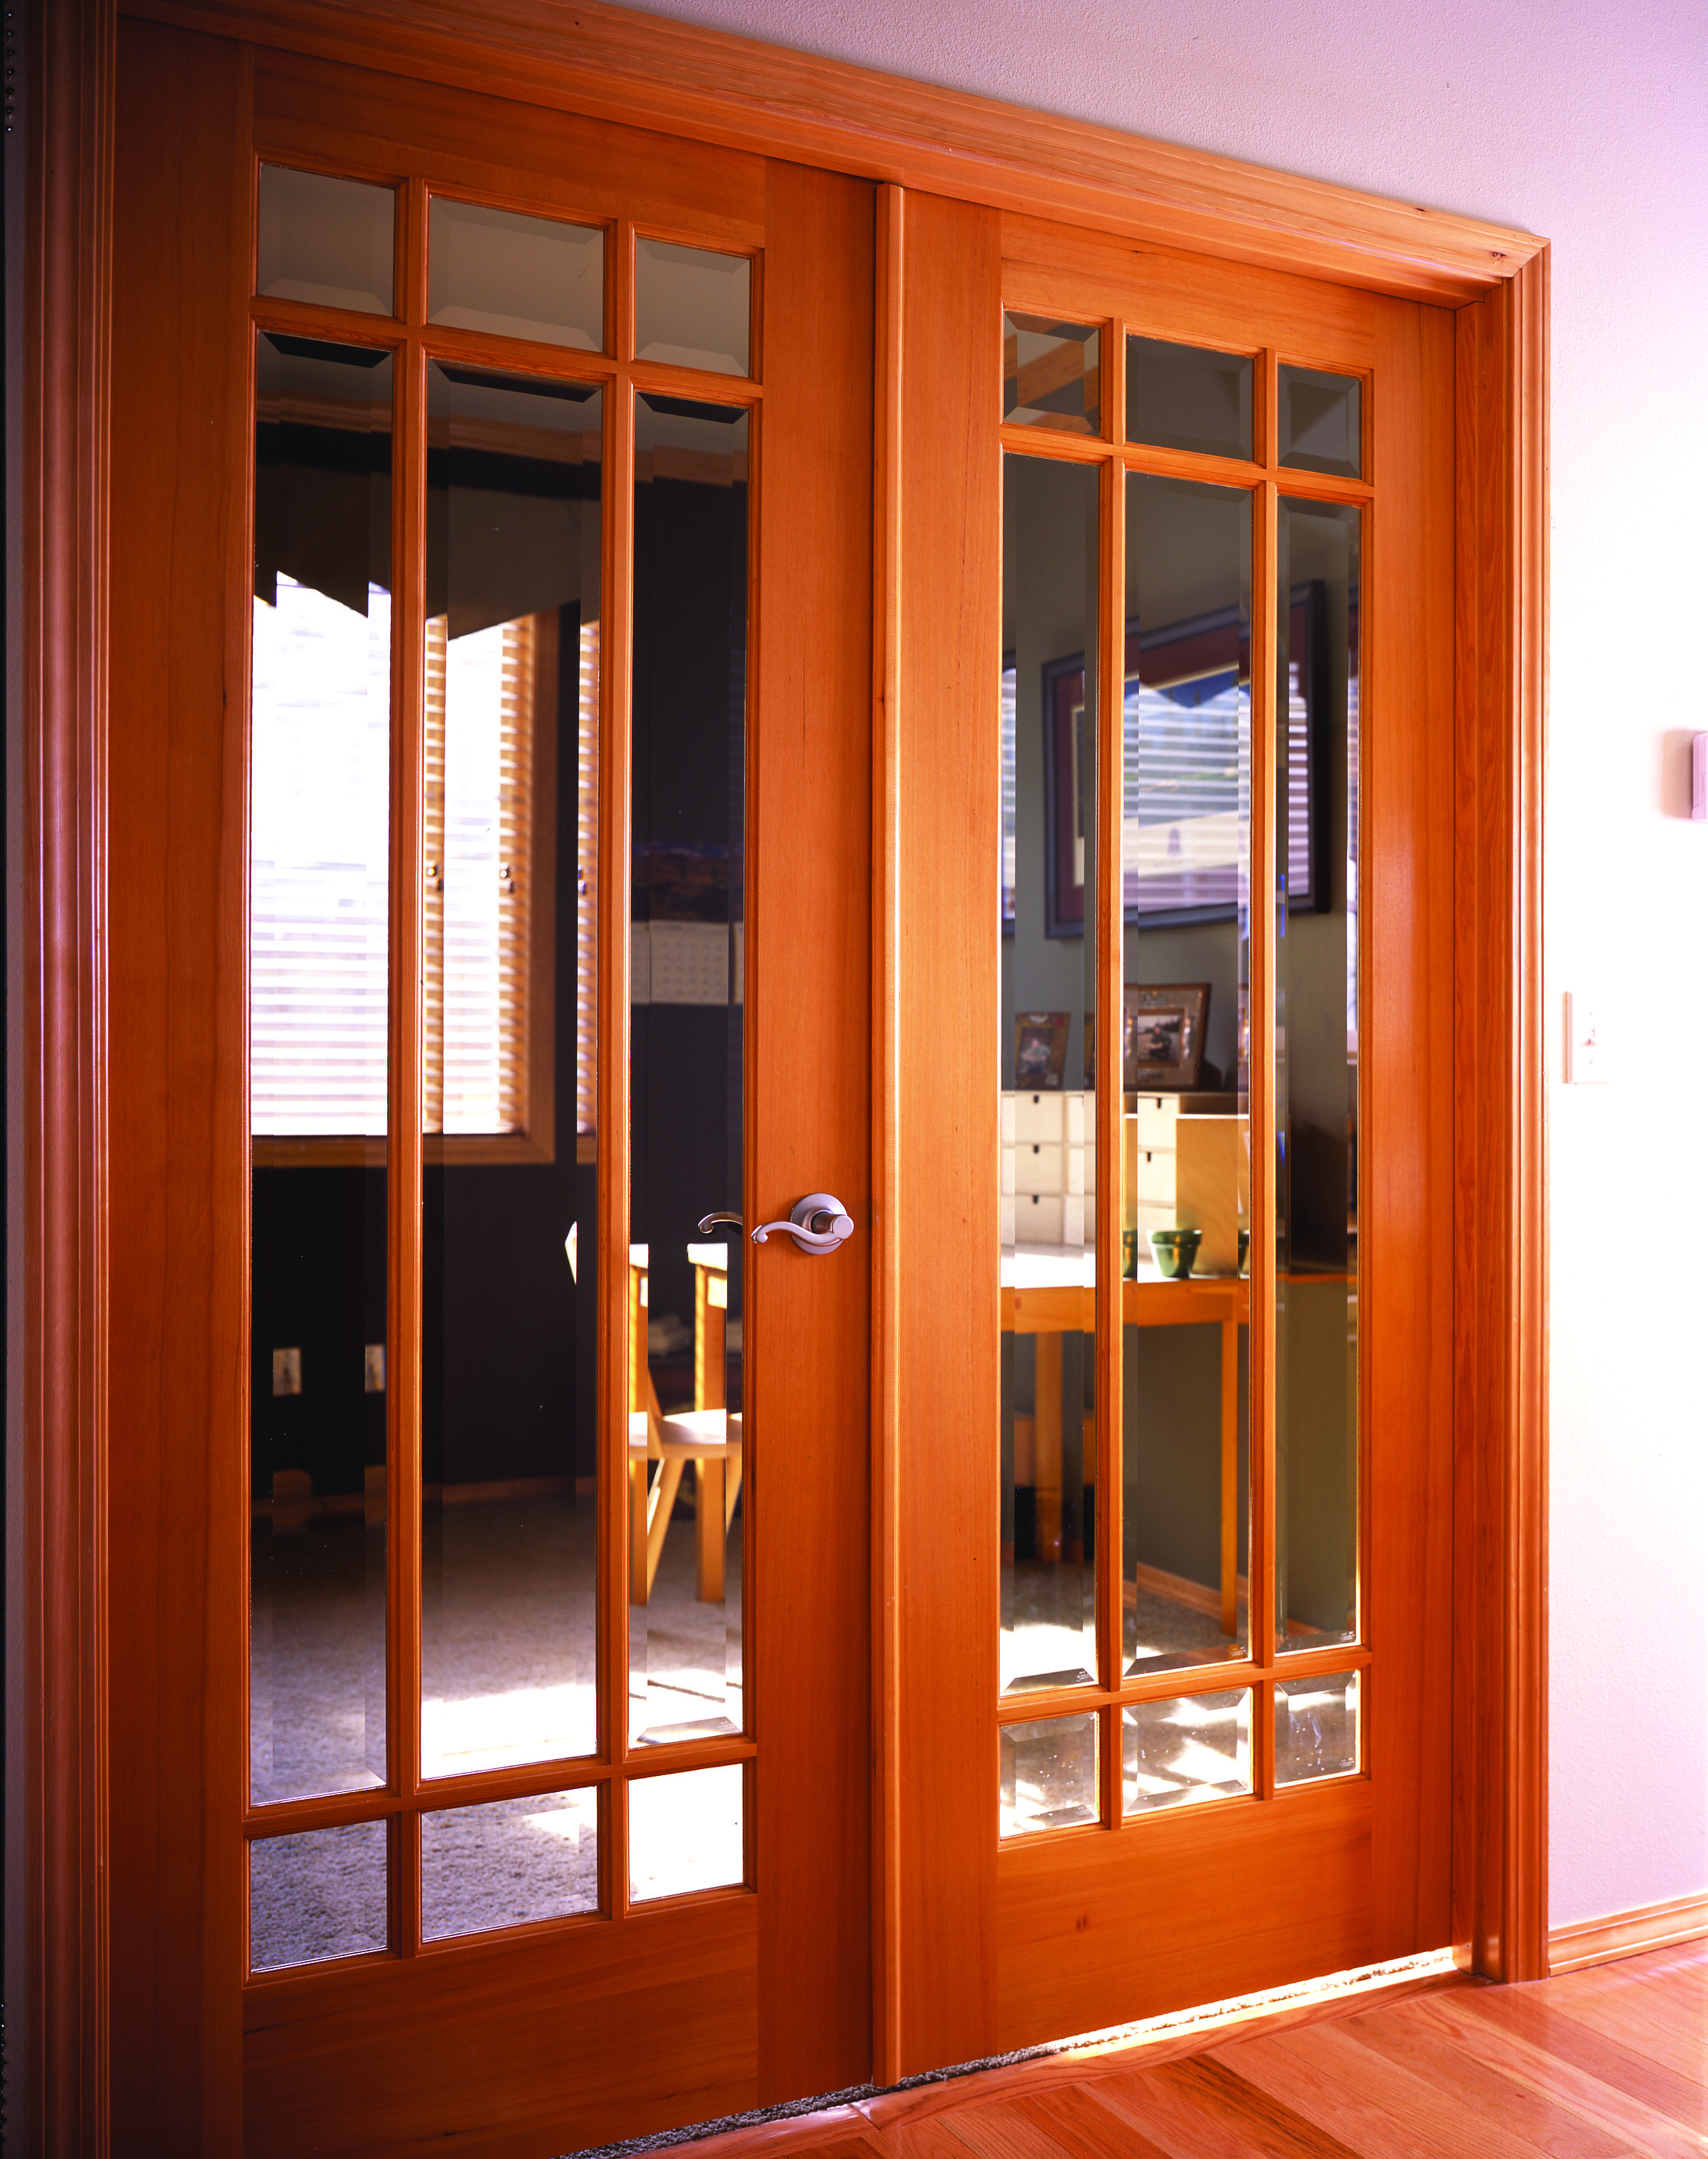 Simpson Entry Door Simpson 1309 Exterior French Sash Door Modern Exterior Doors French Doors Interior French Doors